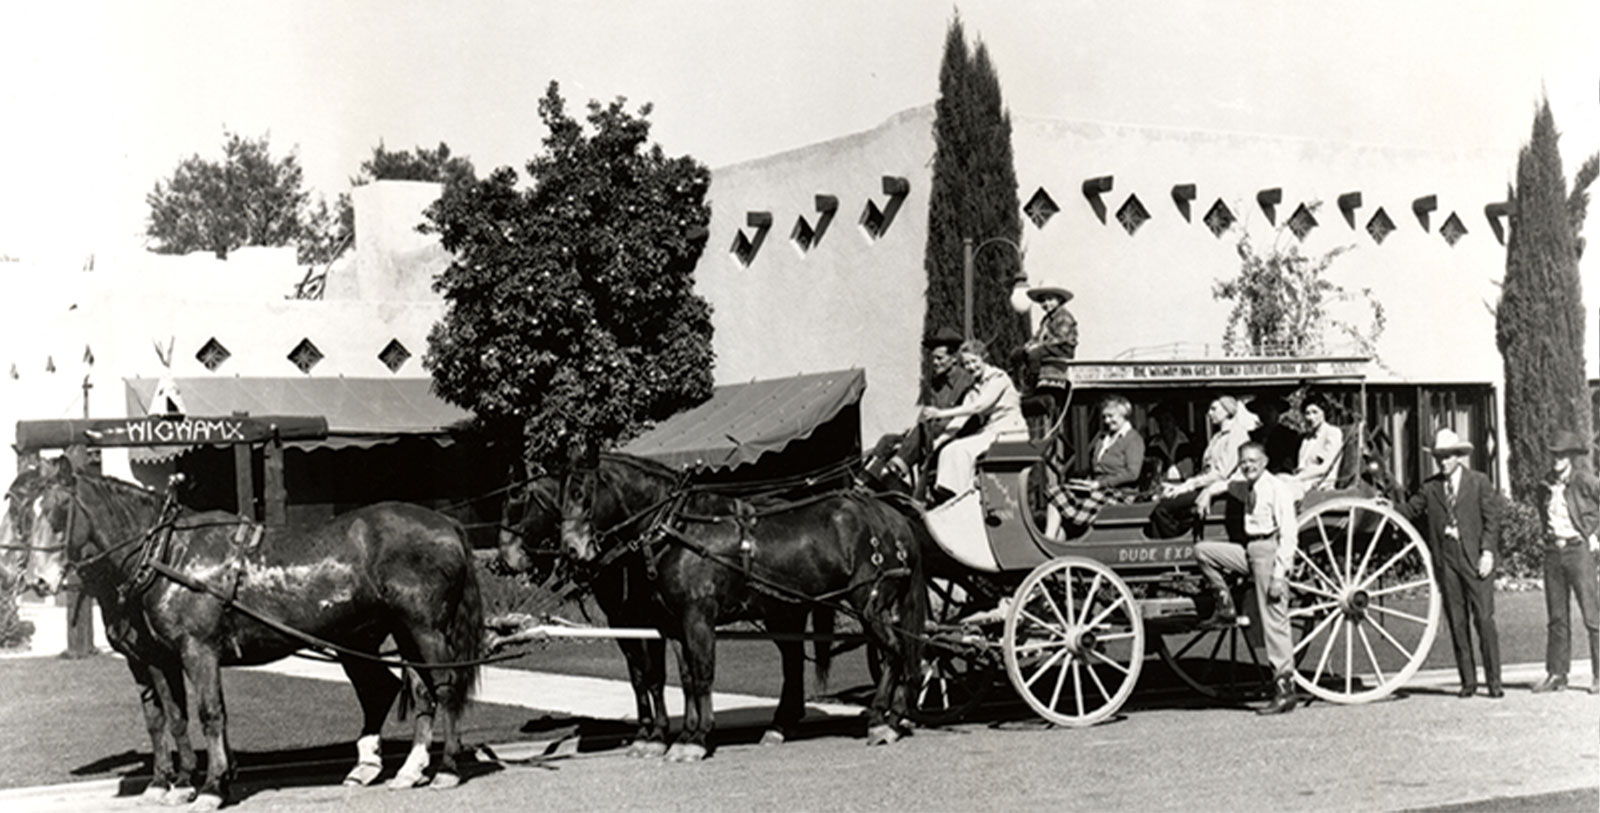 Historic Image of Carriage Outside The Wigwam, 1929, Member of Historic Hotels of America, in Litchfield Park, Arizona, Discover